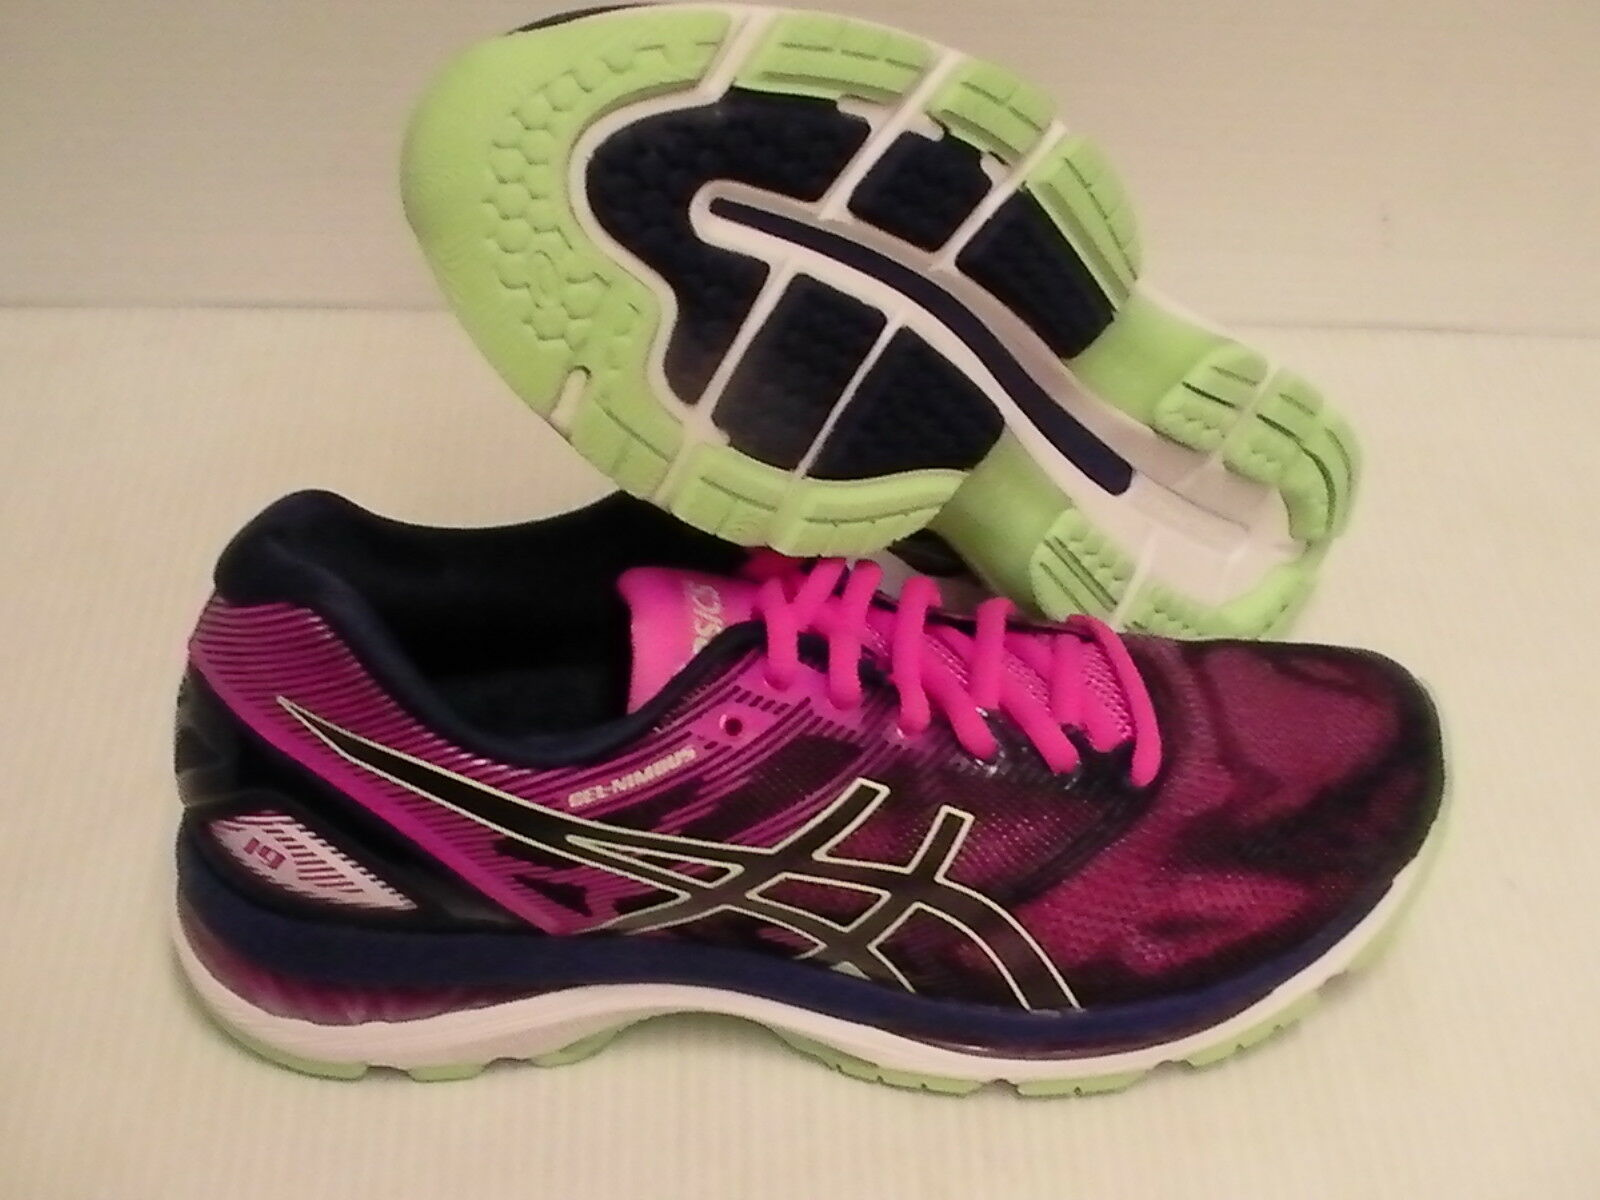 Asics women's gel nimbus 19 running shoes indigo bluee paradise green size 9 us